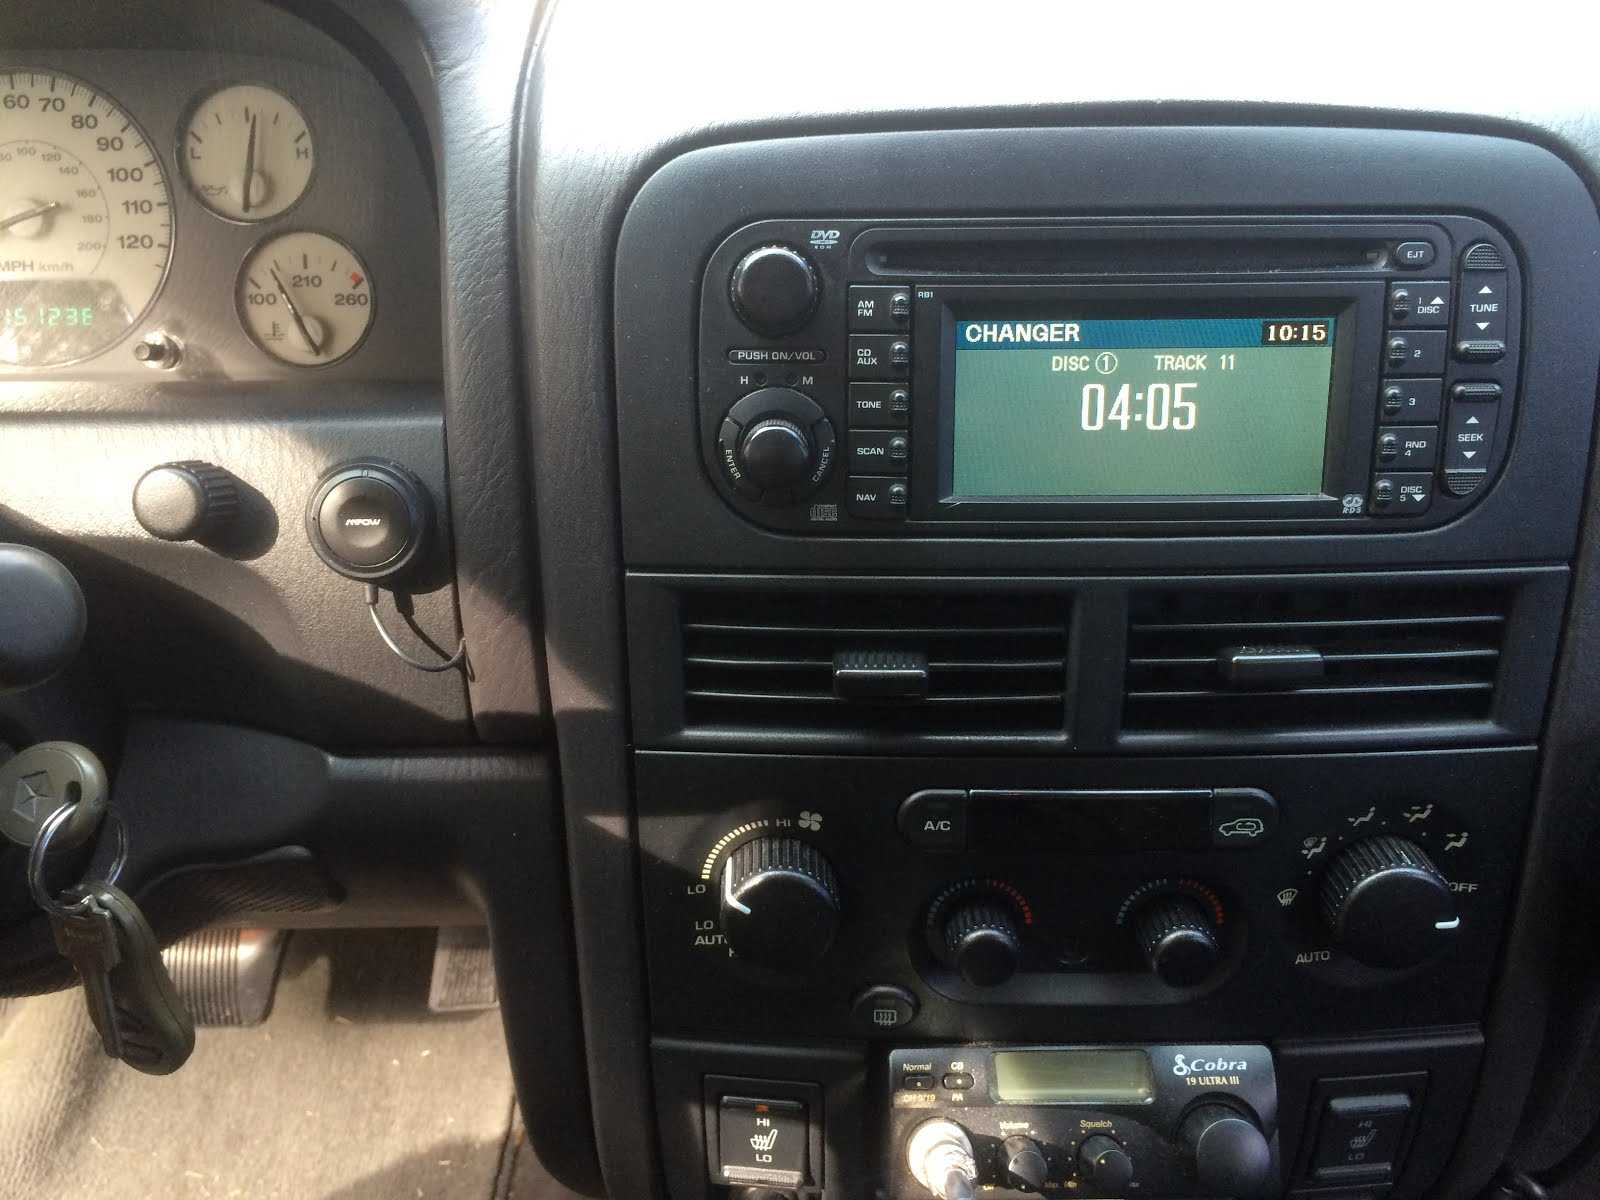 hight resolution of keep the stock radio nav unit and add an aux input and bluetooth adapter for